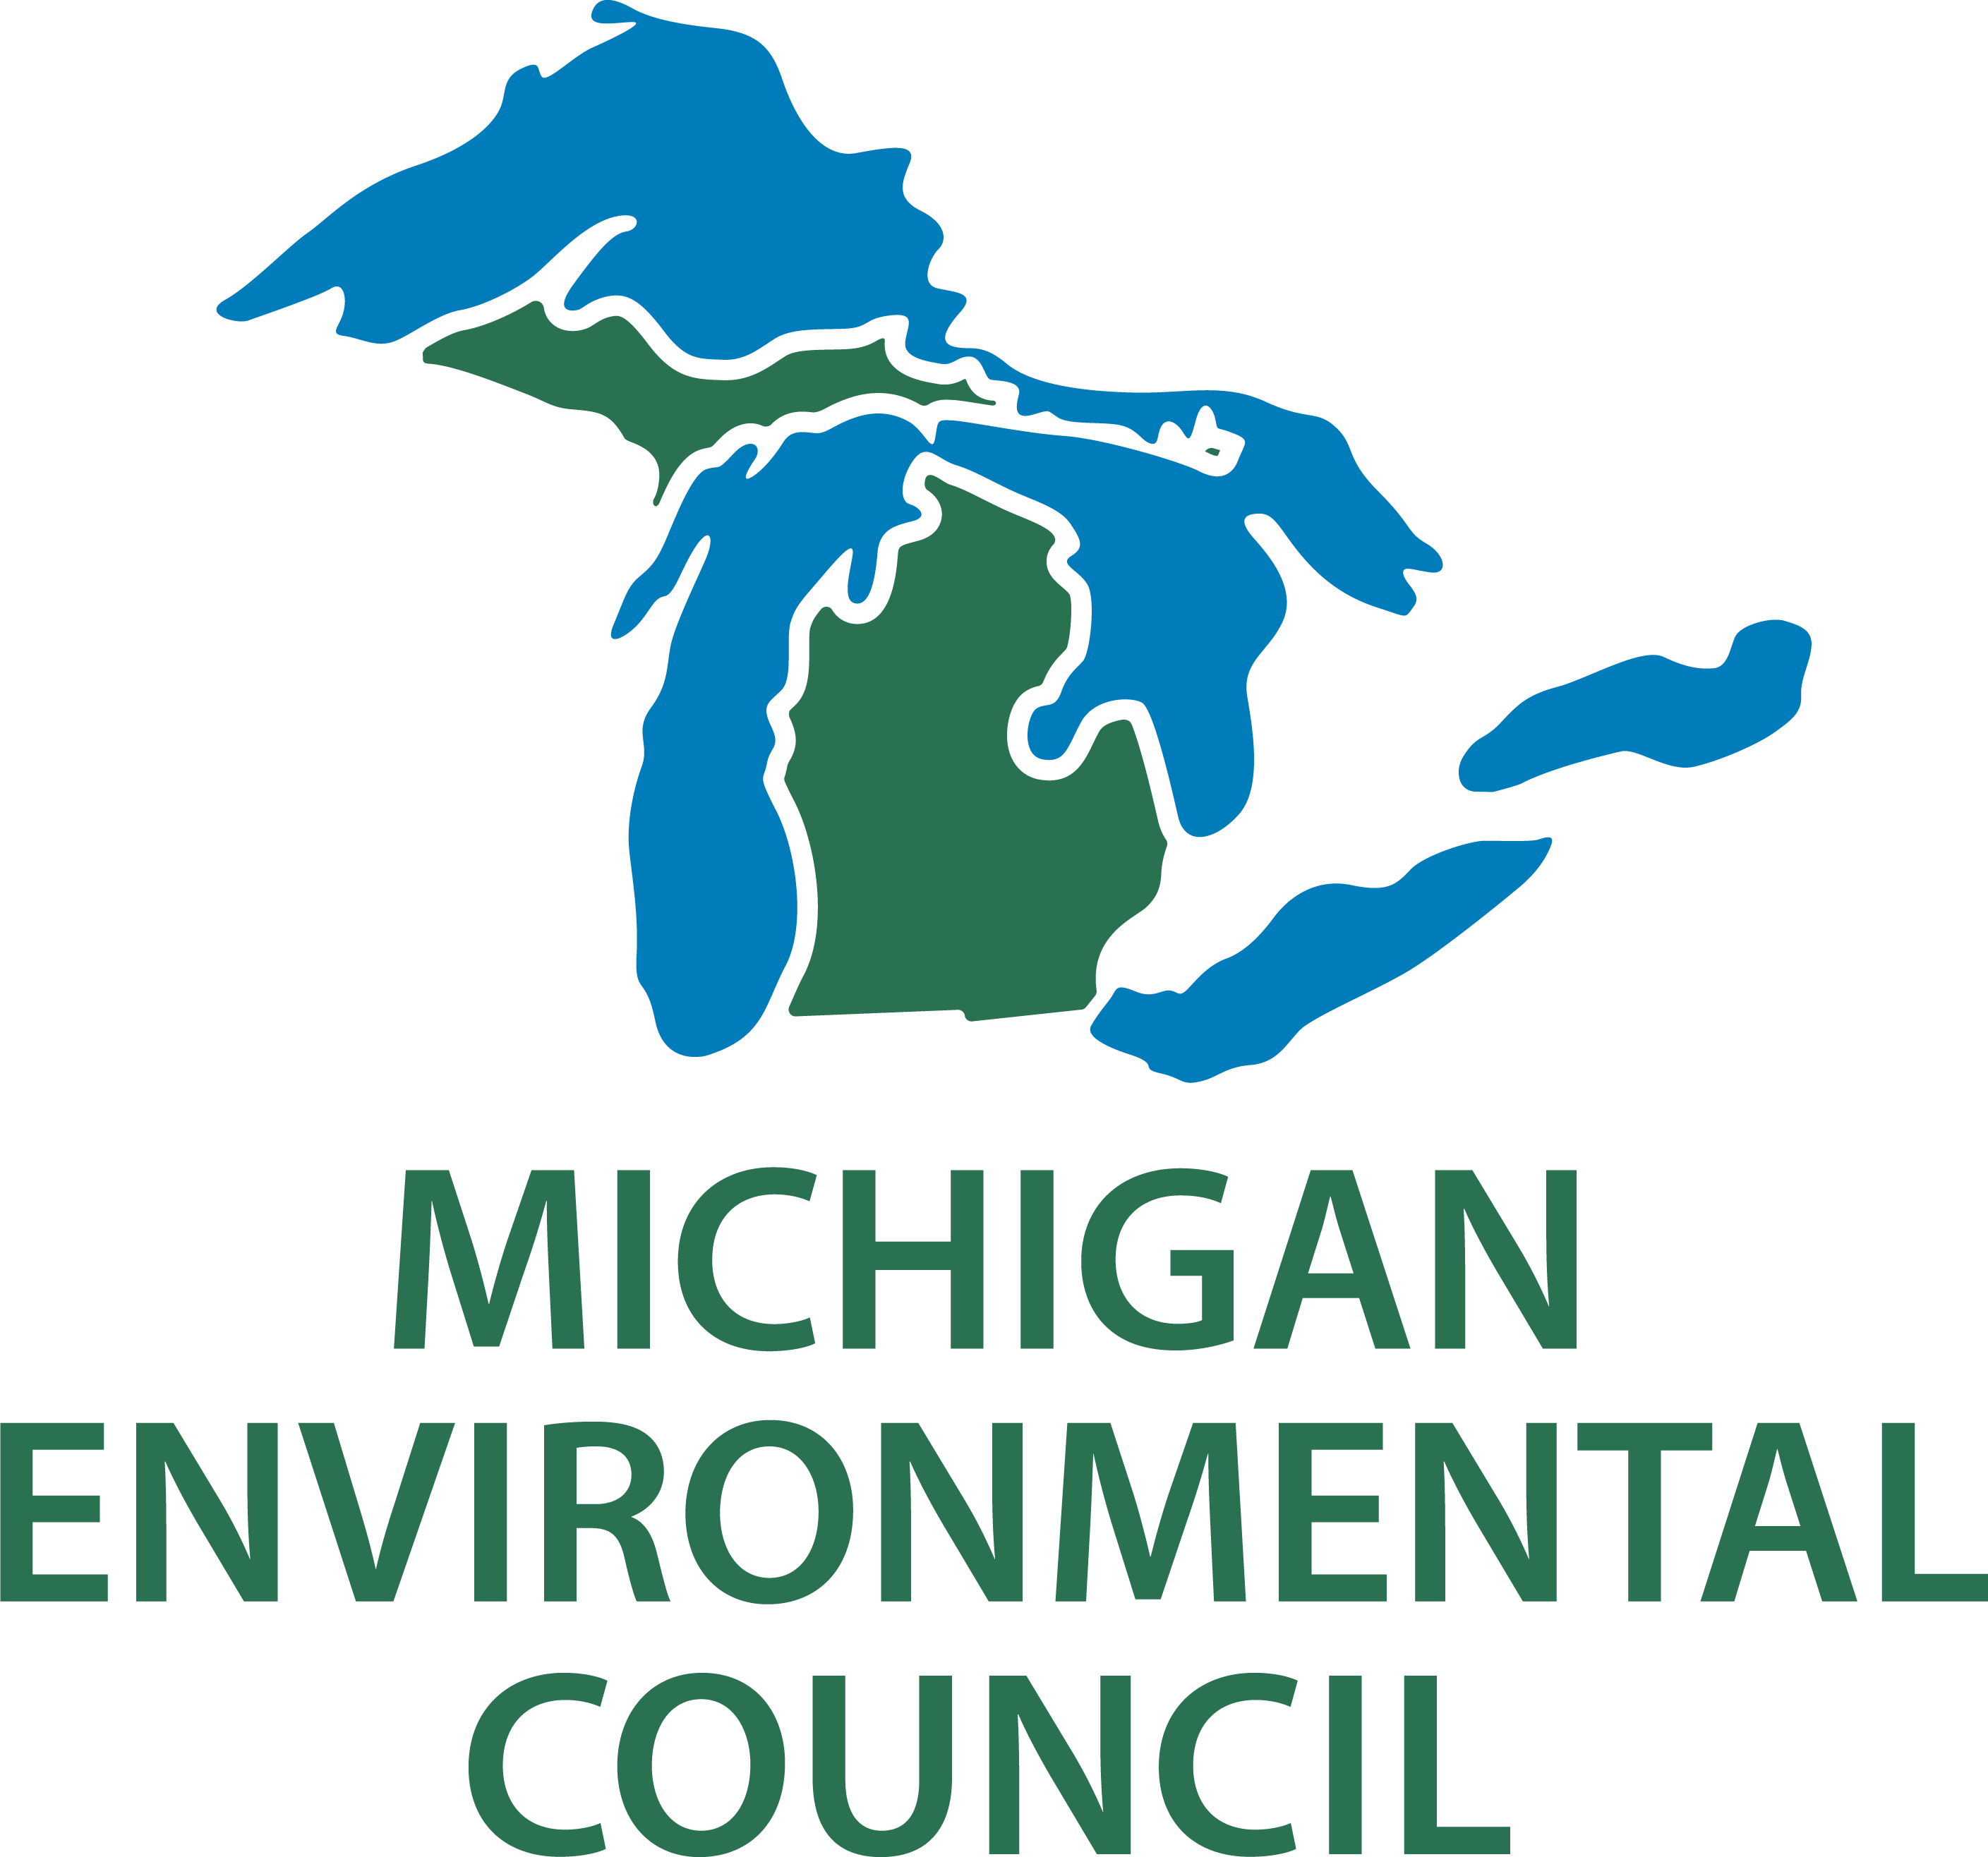 Michigan Environmental Council